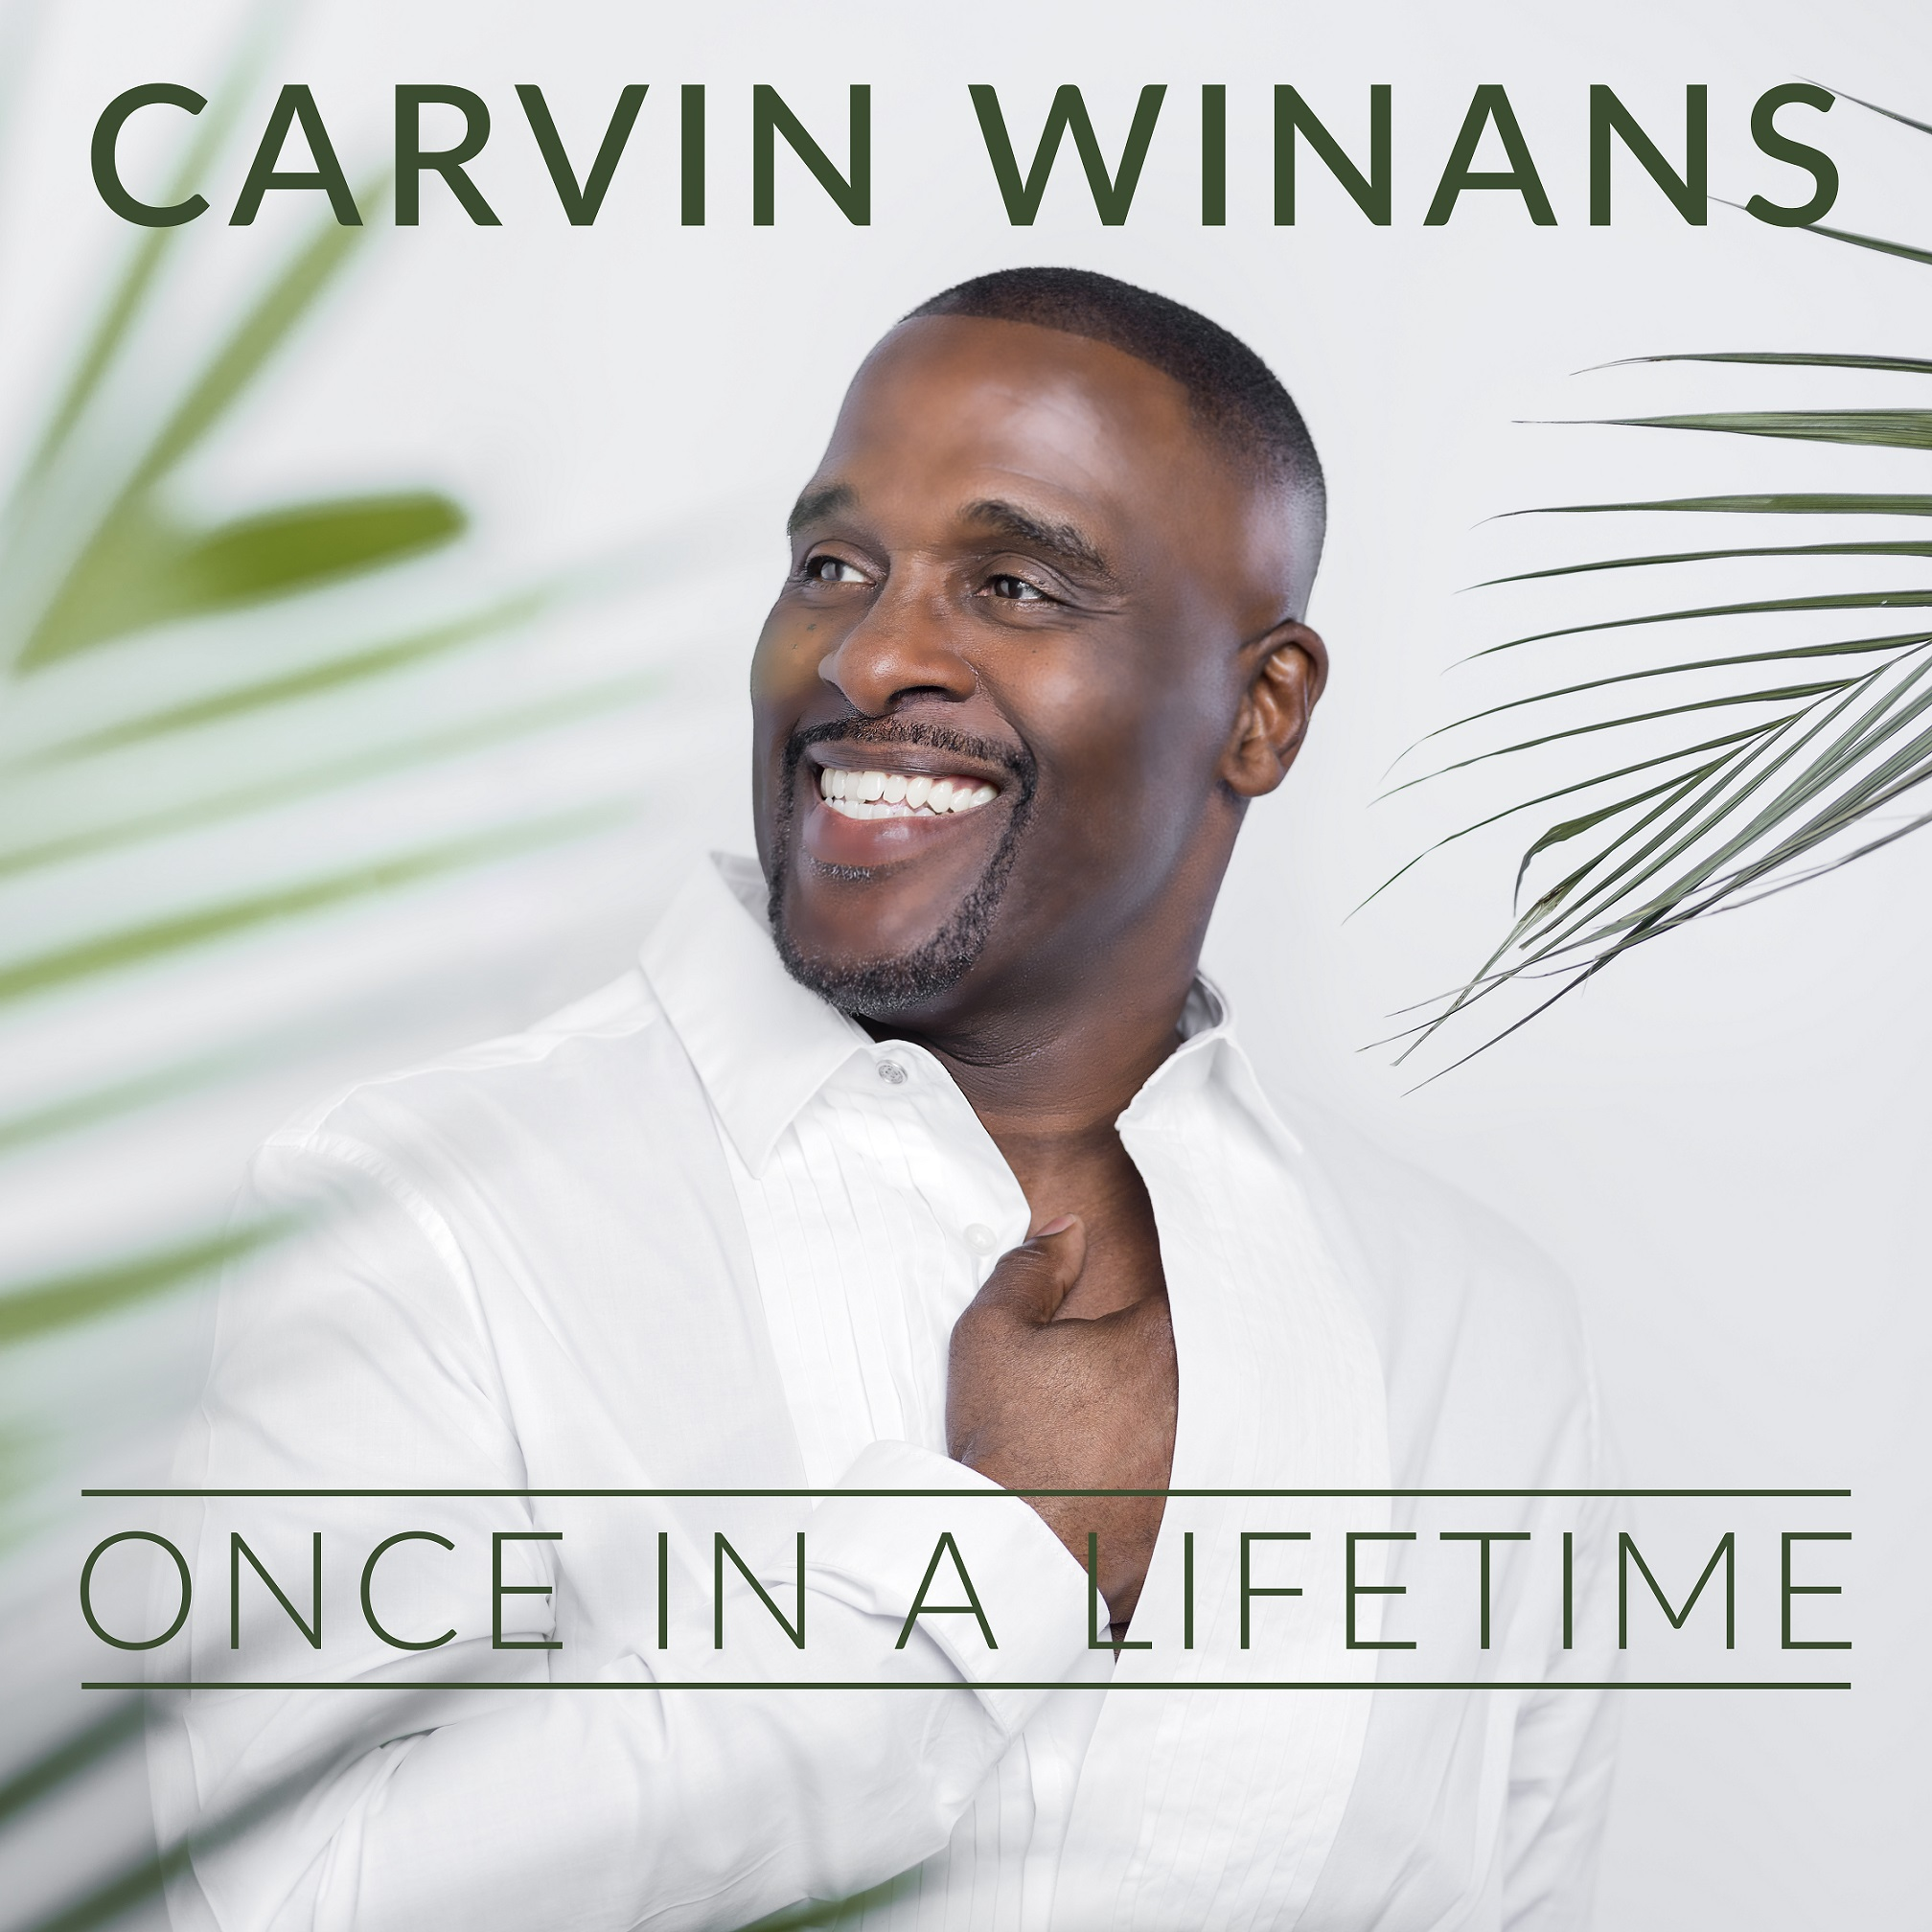 Multi-Grammy Winner Carvin Winans Releases New Single 'Once In A Lifetime'